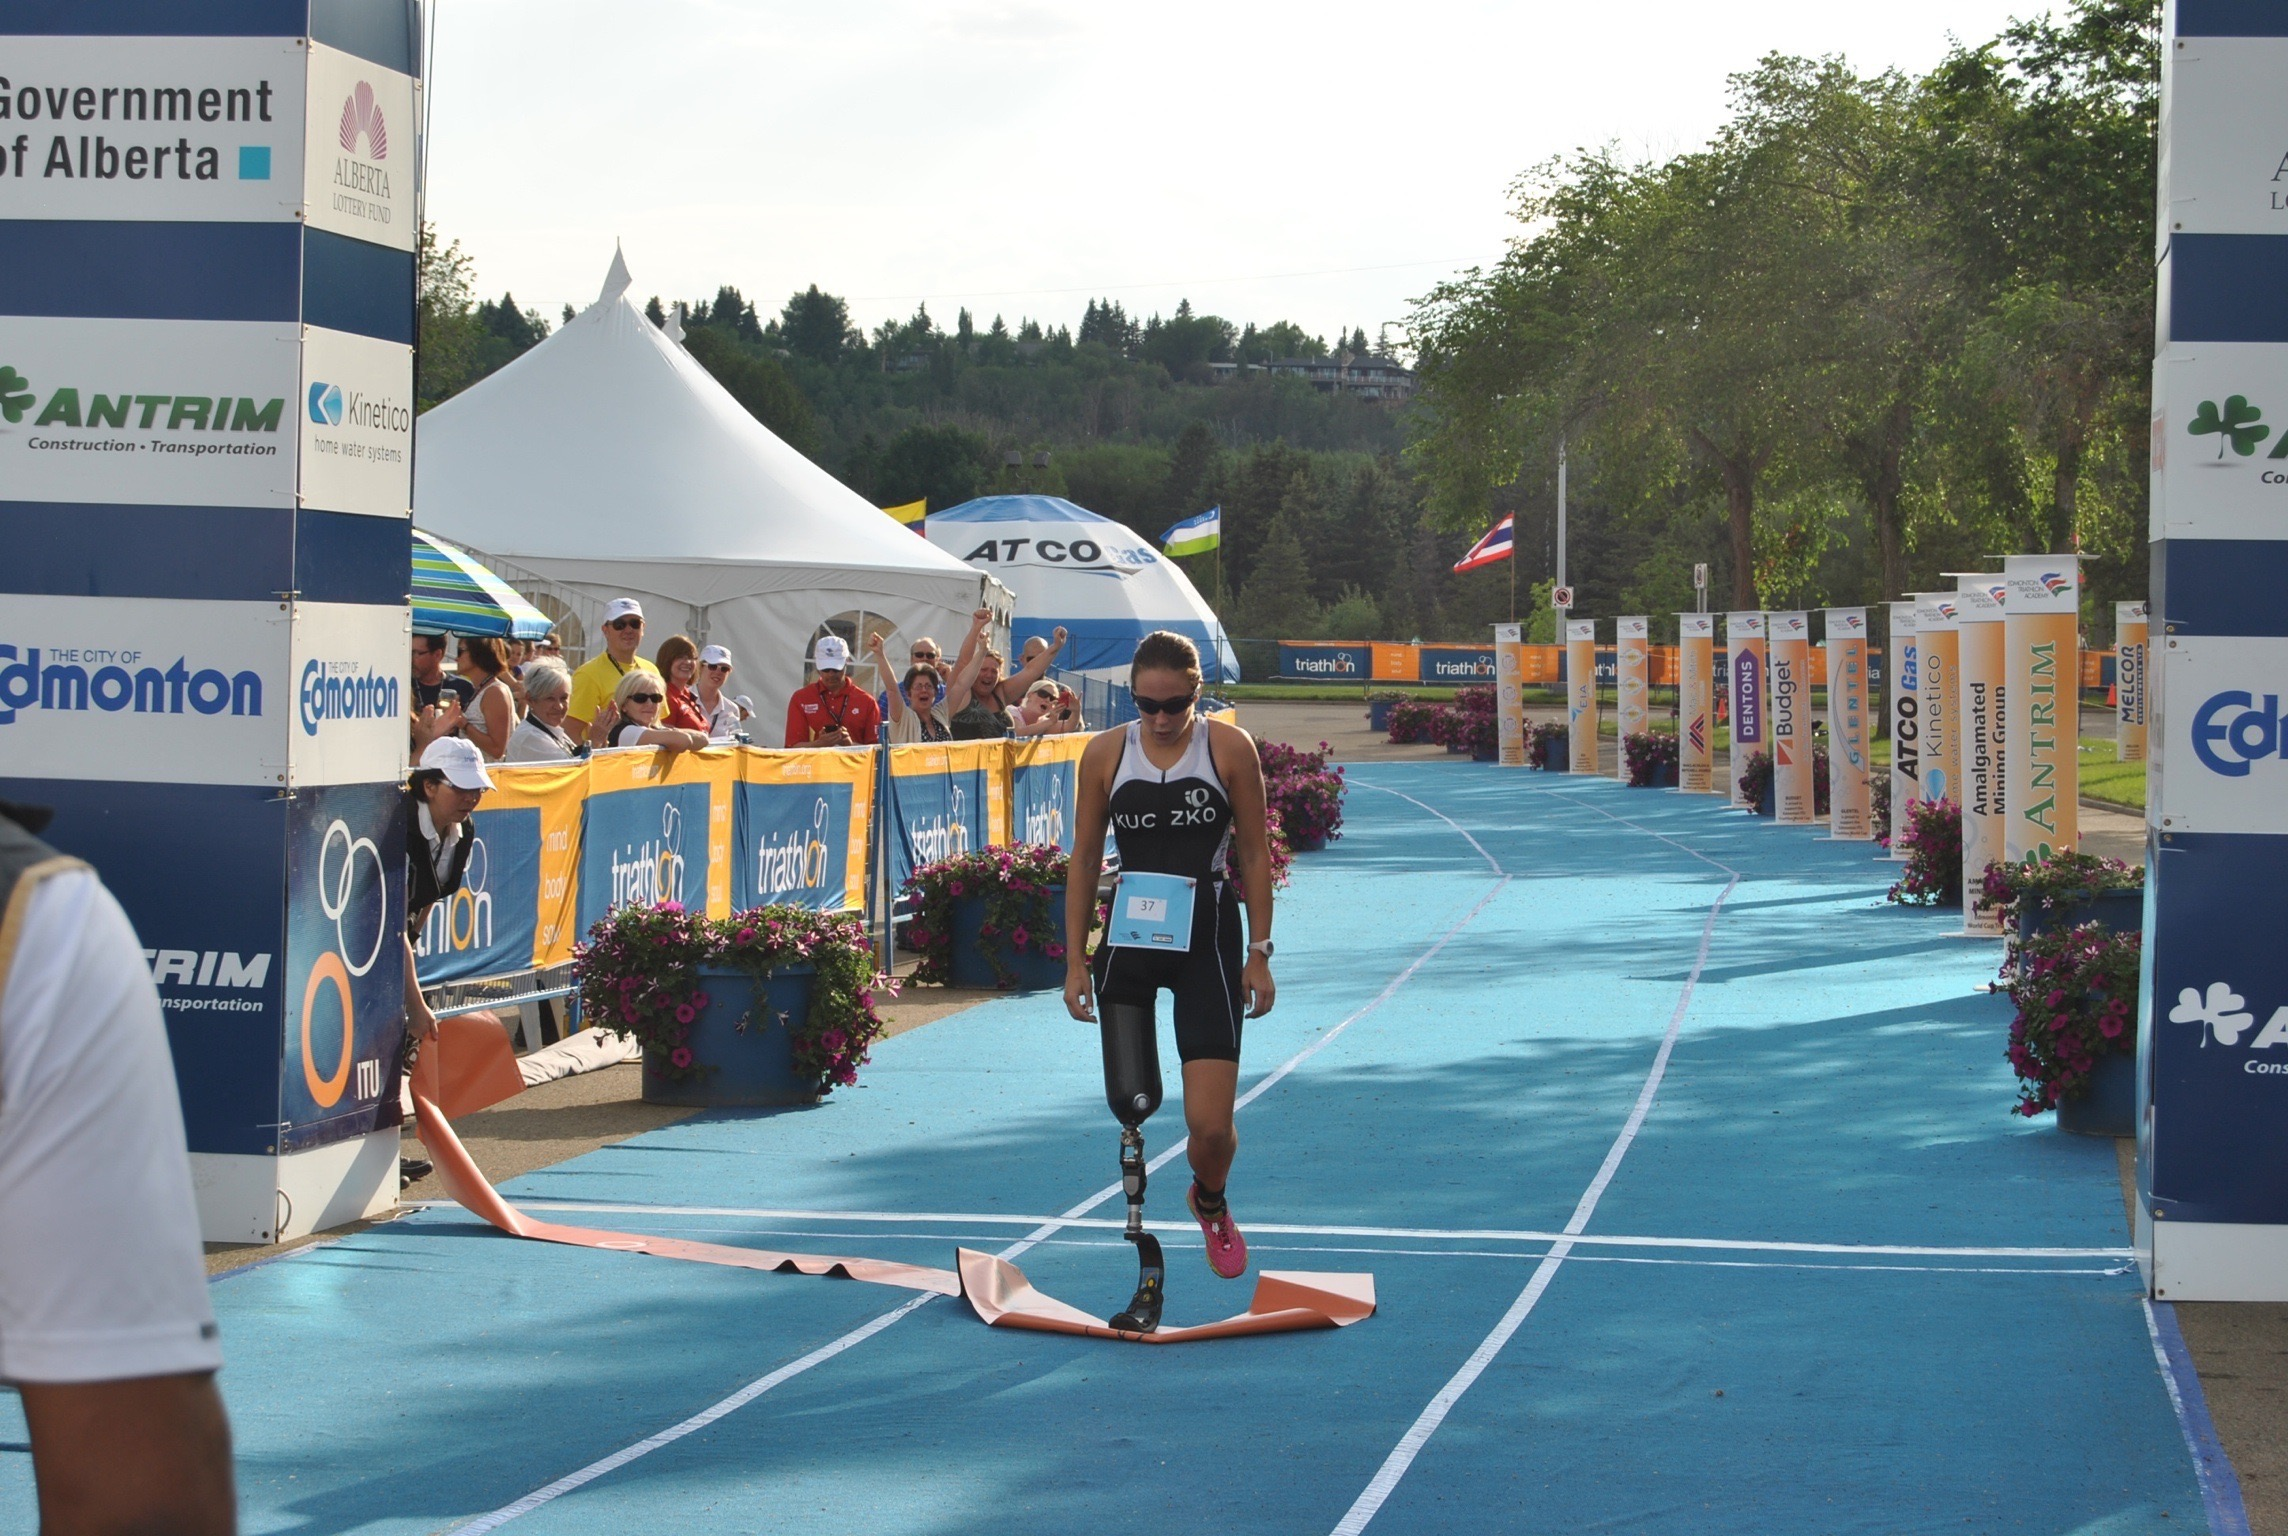 triathlon runner with transfemoral prosthesis